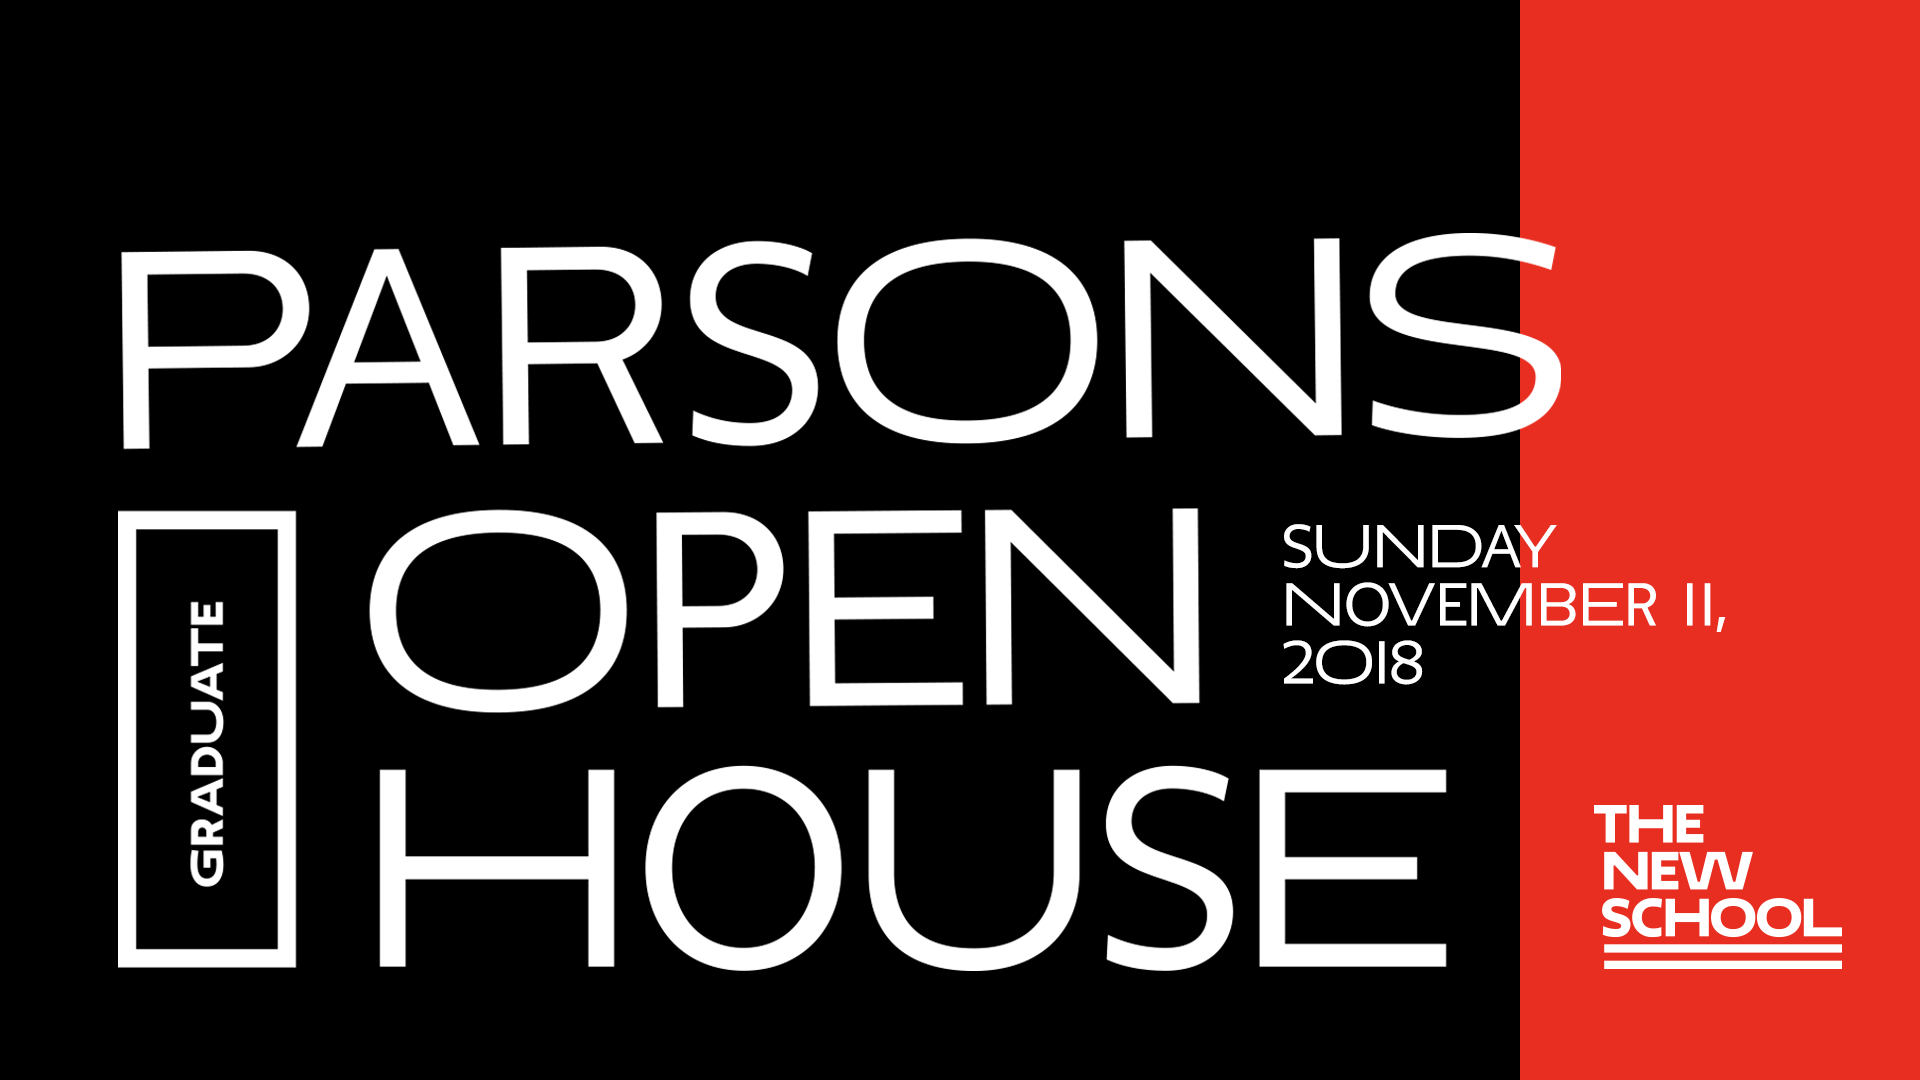 Parsons School of Design Graduate Open House